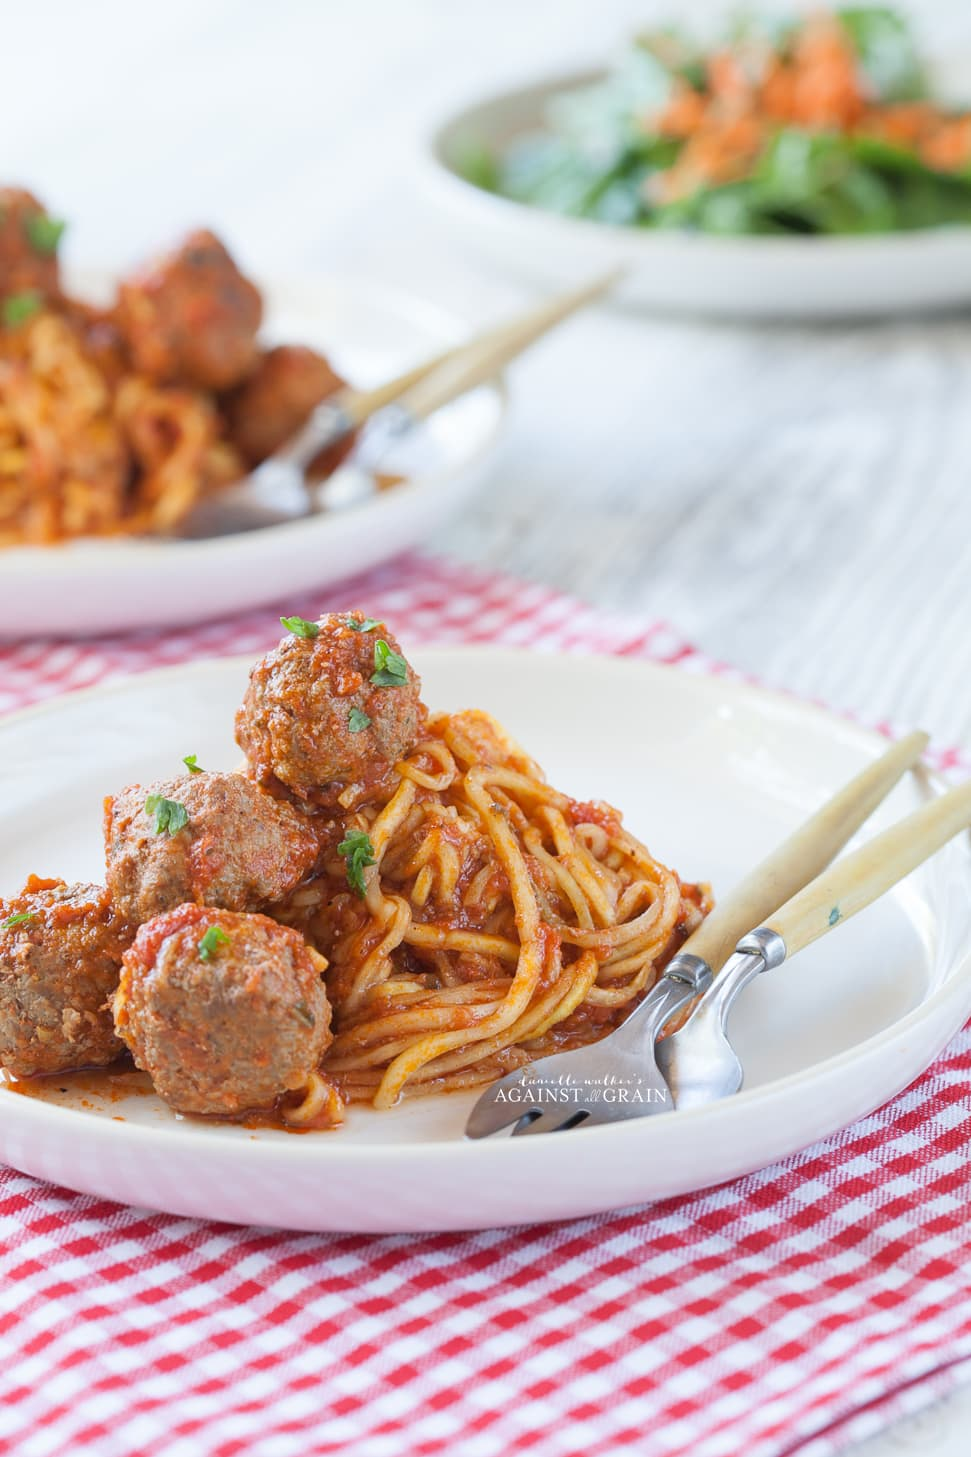 Paleo Spaghetti and Meatballs | Against All Grain - Delectable paleo ...